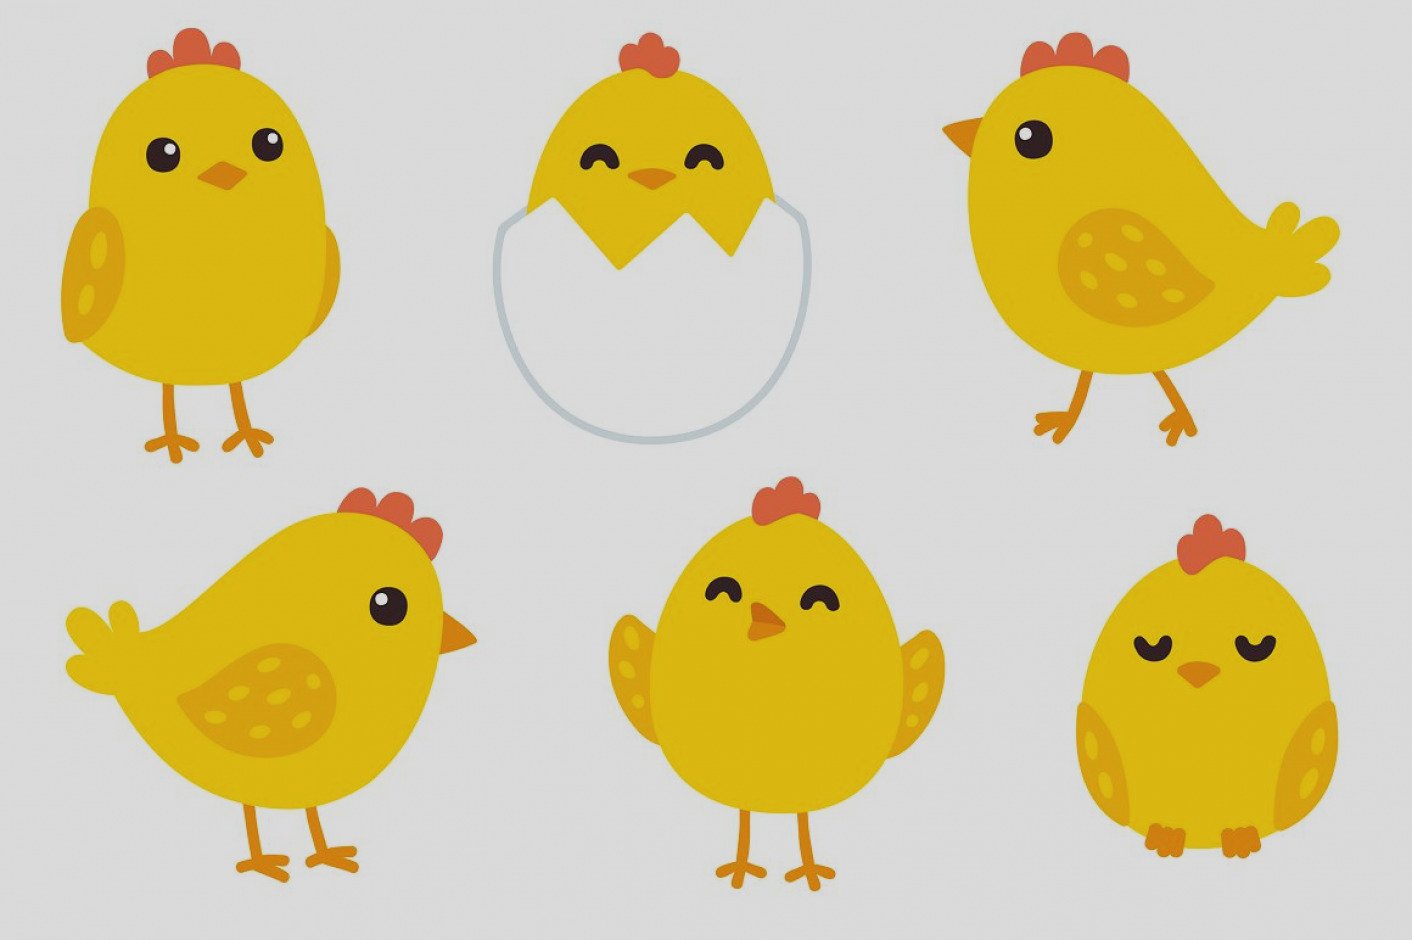 Chickens clipart chick. Awesome baby clip art